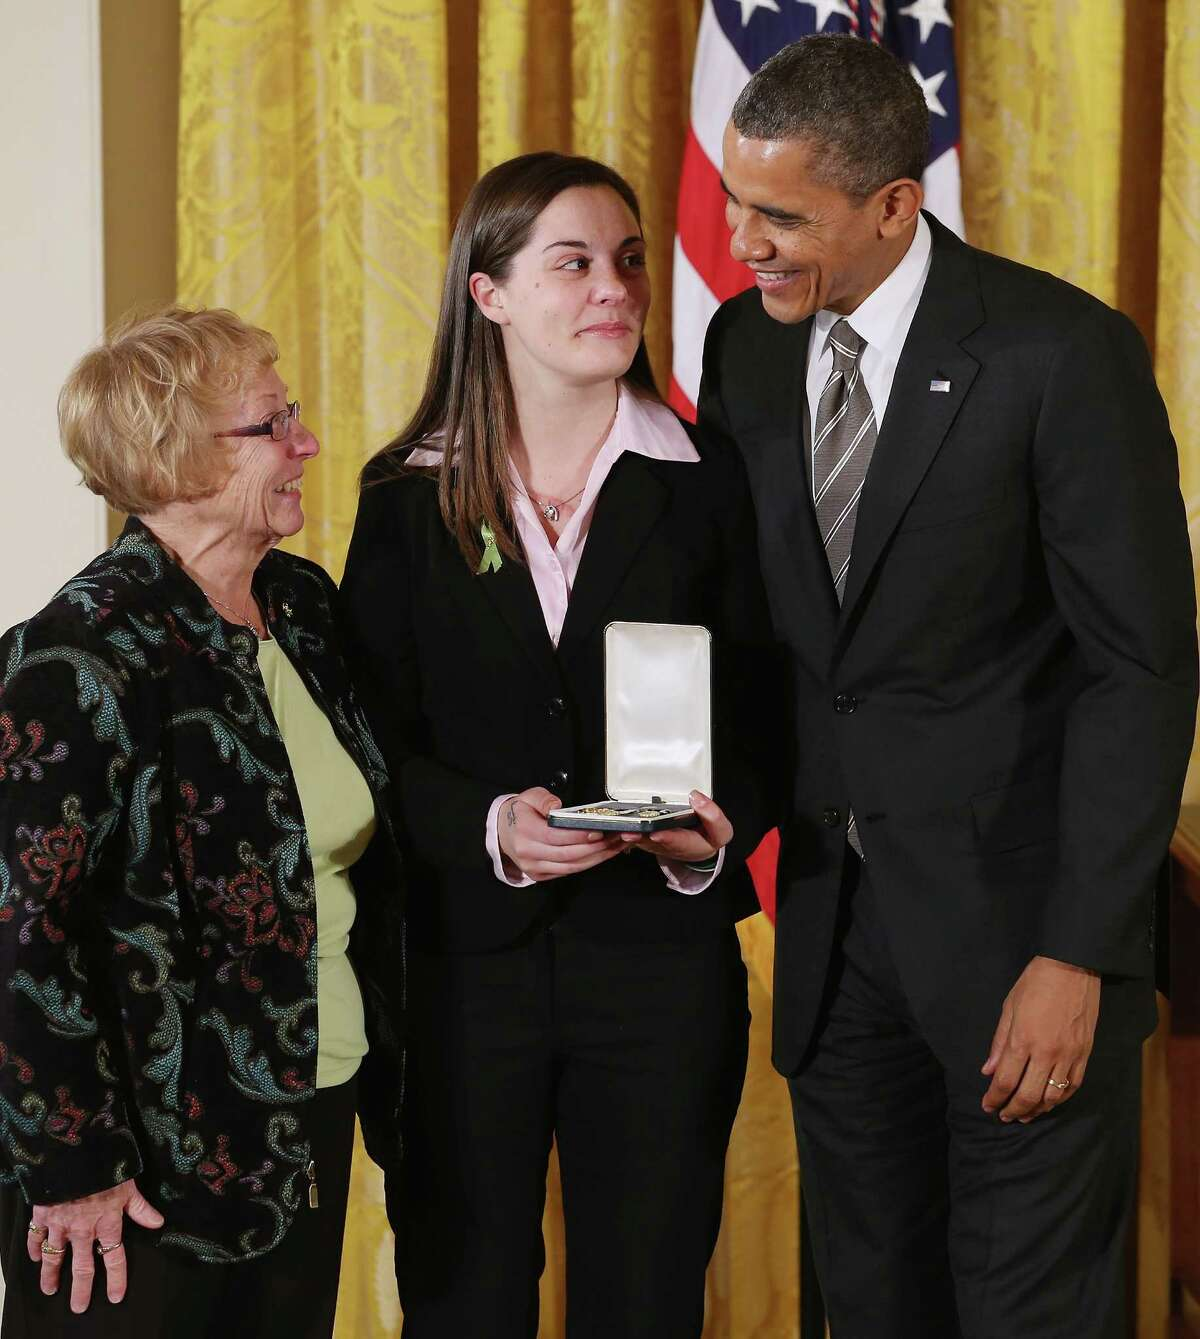 """President Barack Obama presents Erica and Cheryl Lafferty with the 2012 Presidential Citizens Medal, the nation's second-highest civilian honor, on behalf of their mother and daughter Dawn Lafferty Hochsprung in the East Room of the White House February 15, 2013 in Washington, DC. Principal Dawn Lafferty Hochsprung was killed during a mass shooting that left 26 people dead at Sandy Hook Elementary School in December 2012. """"Their selflessness and courage inspire us all to look for opportunities to better serve our communities and our country,"""" Obama said about this year's recepients."""